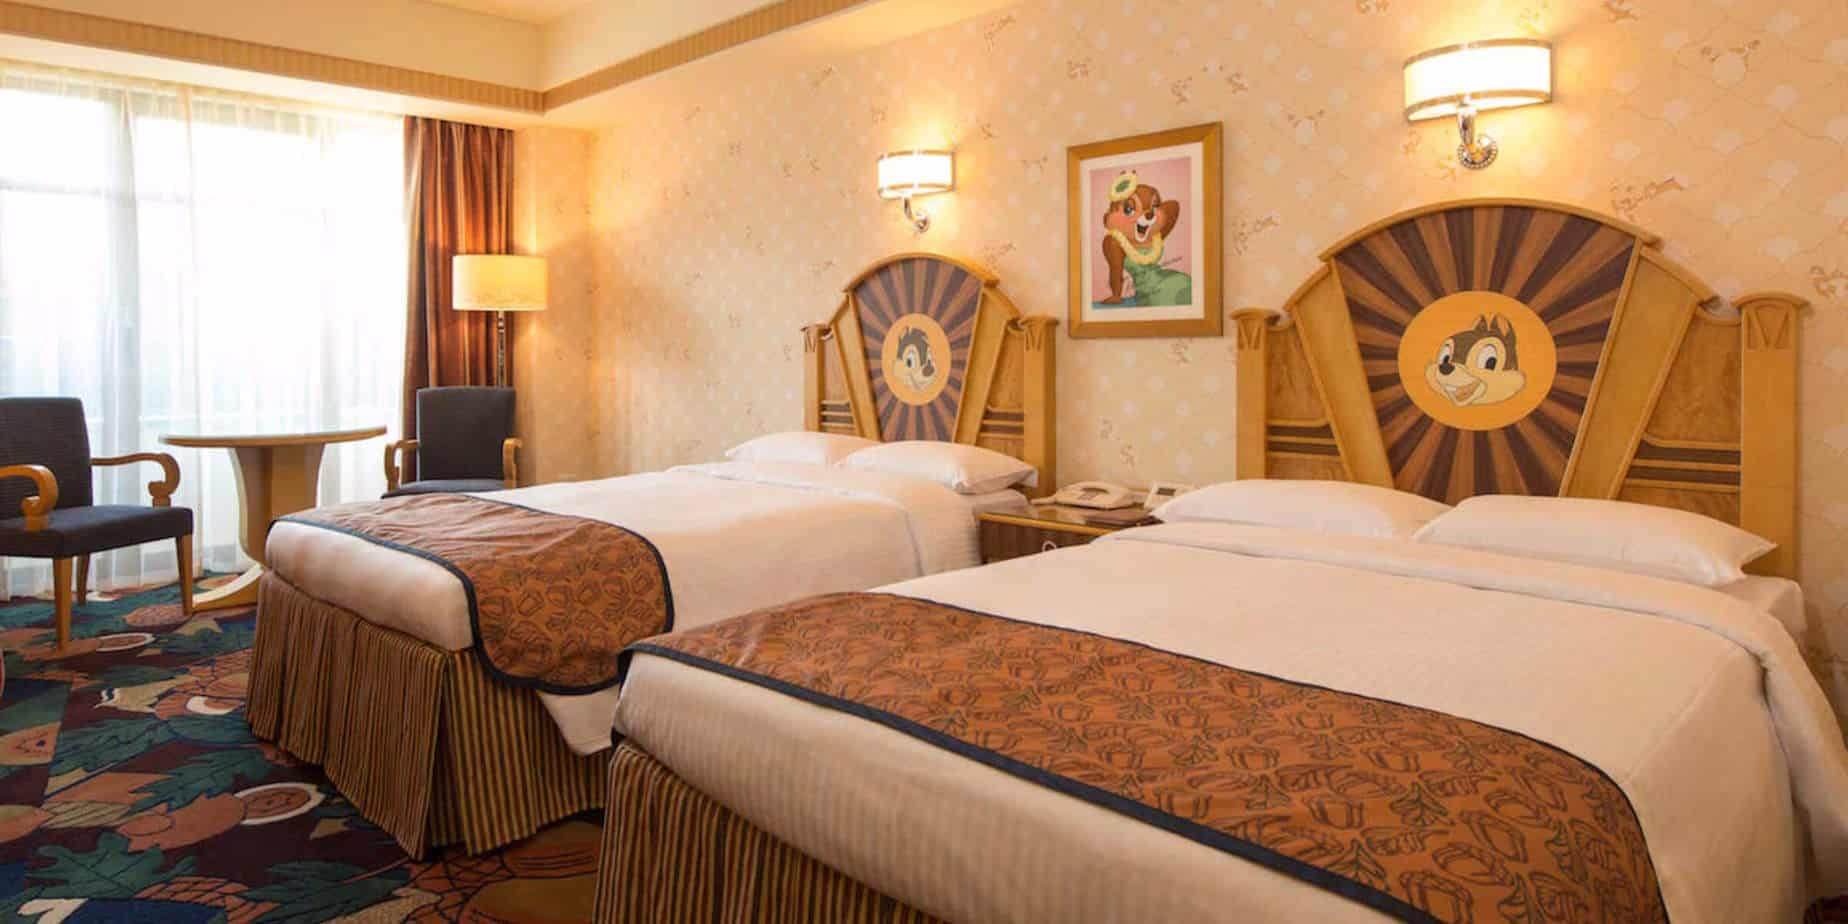 New Chip 'n' Dale & Stitch-Themed Rooms Start at Tokyo Disney Resort